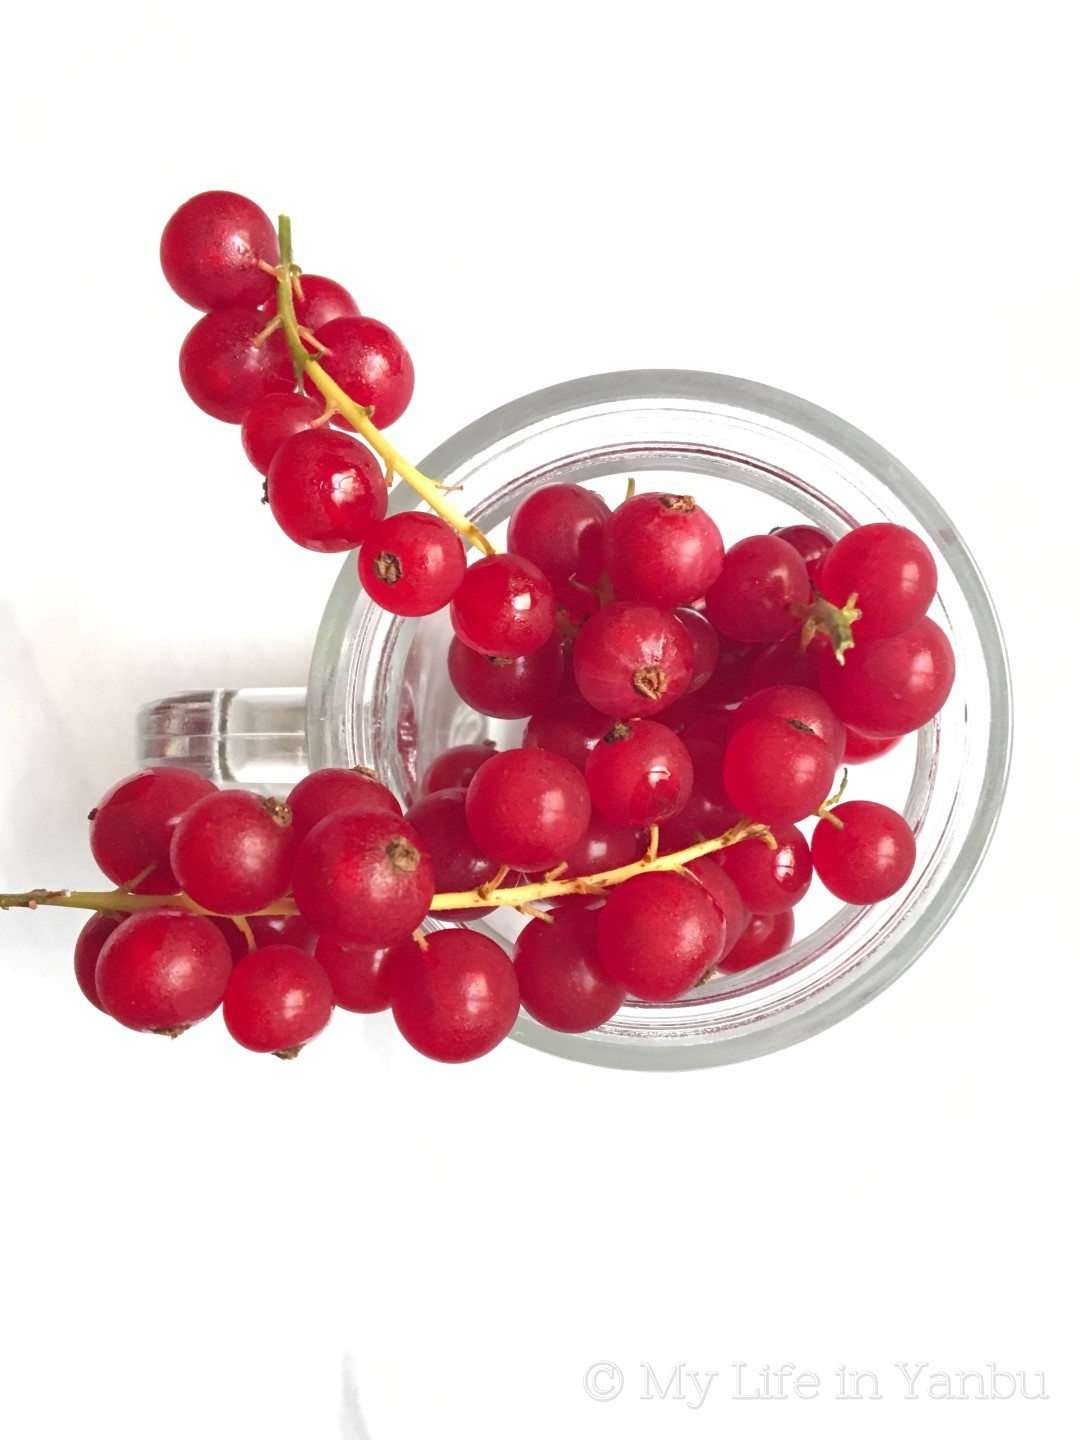 Red Currant Laban